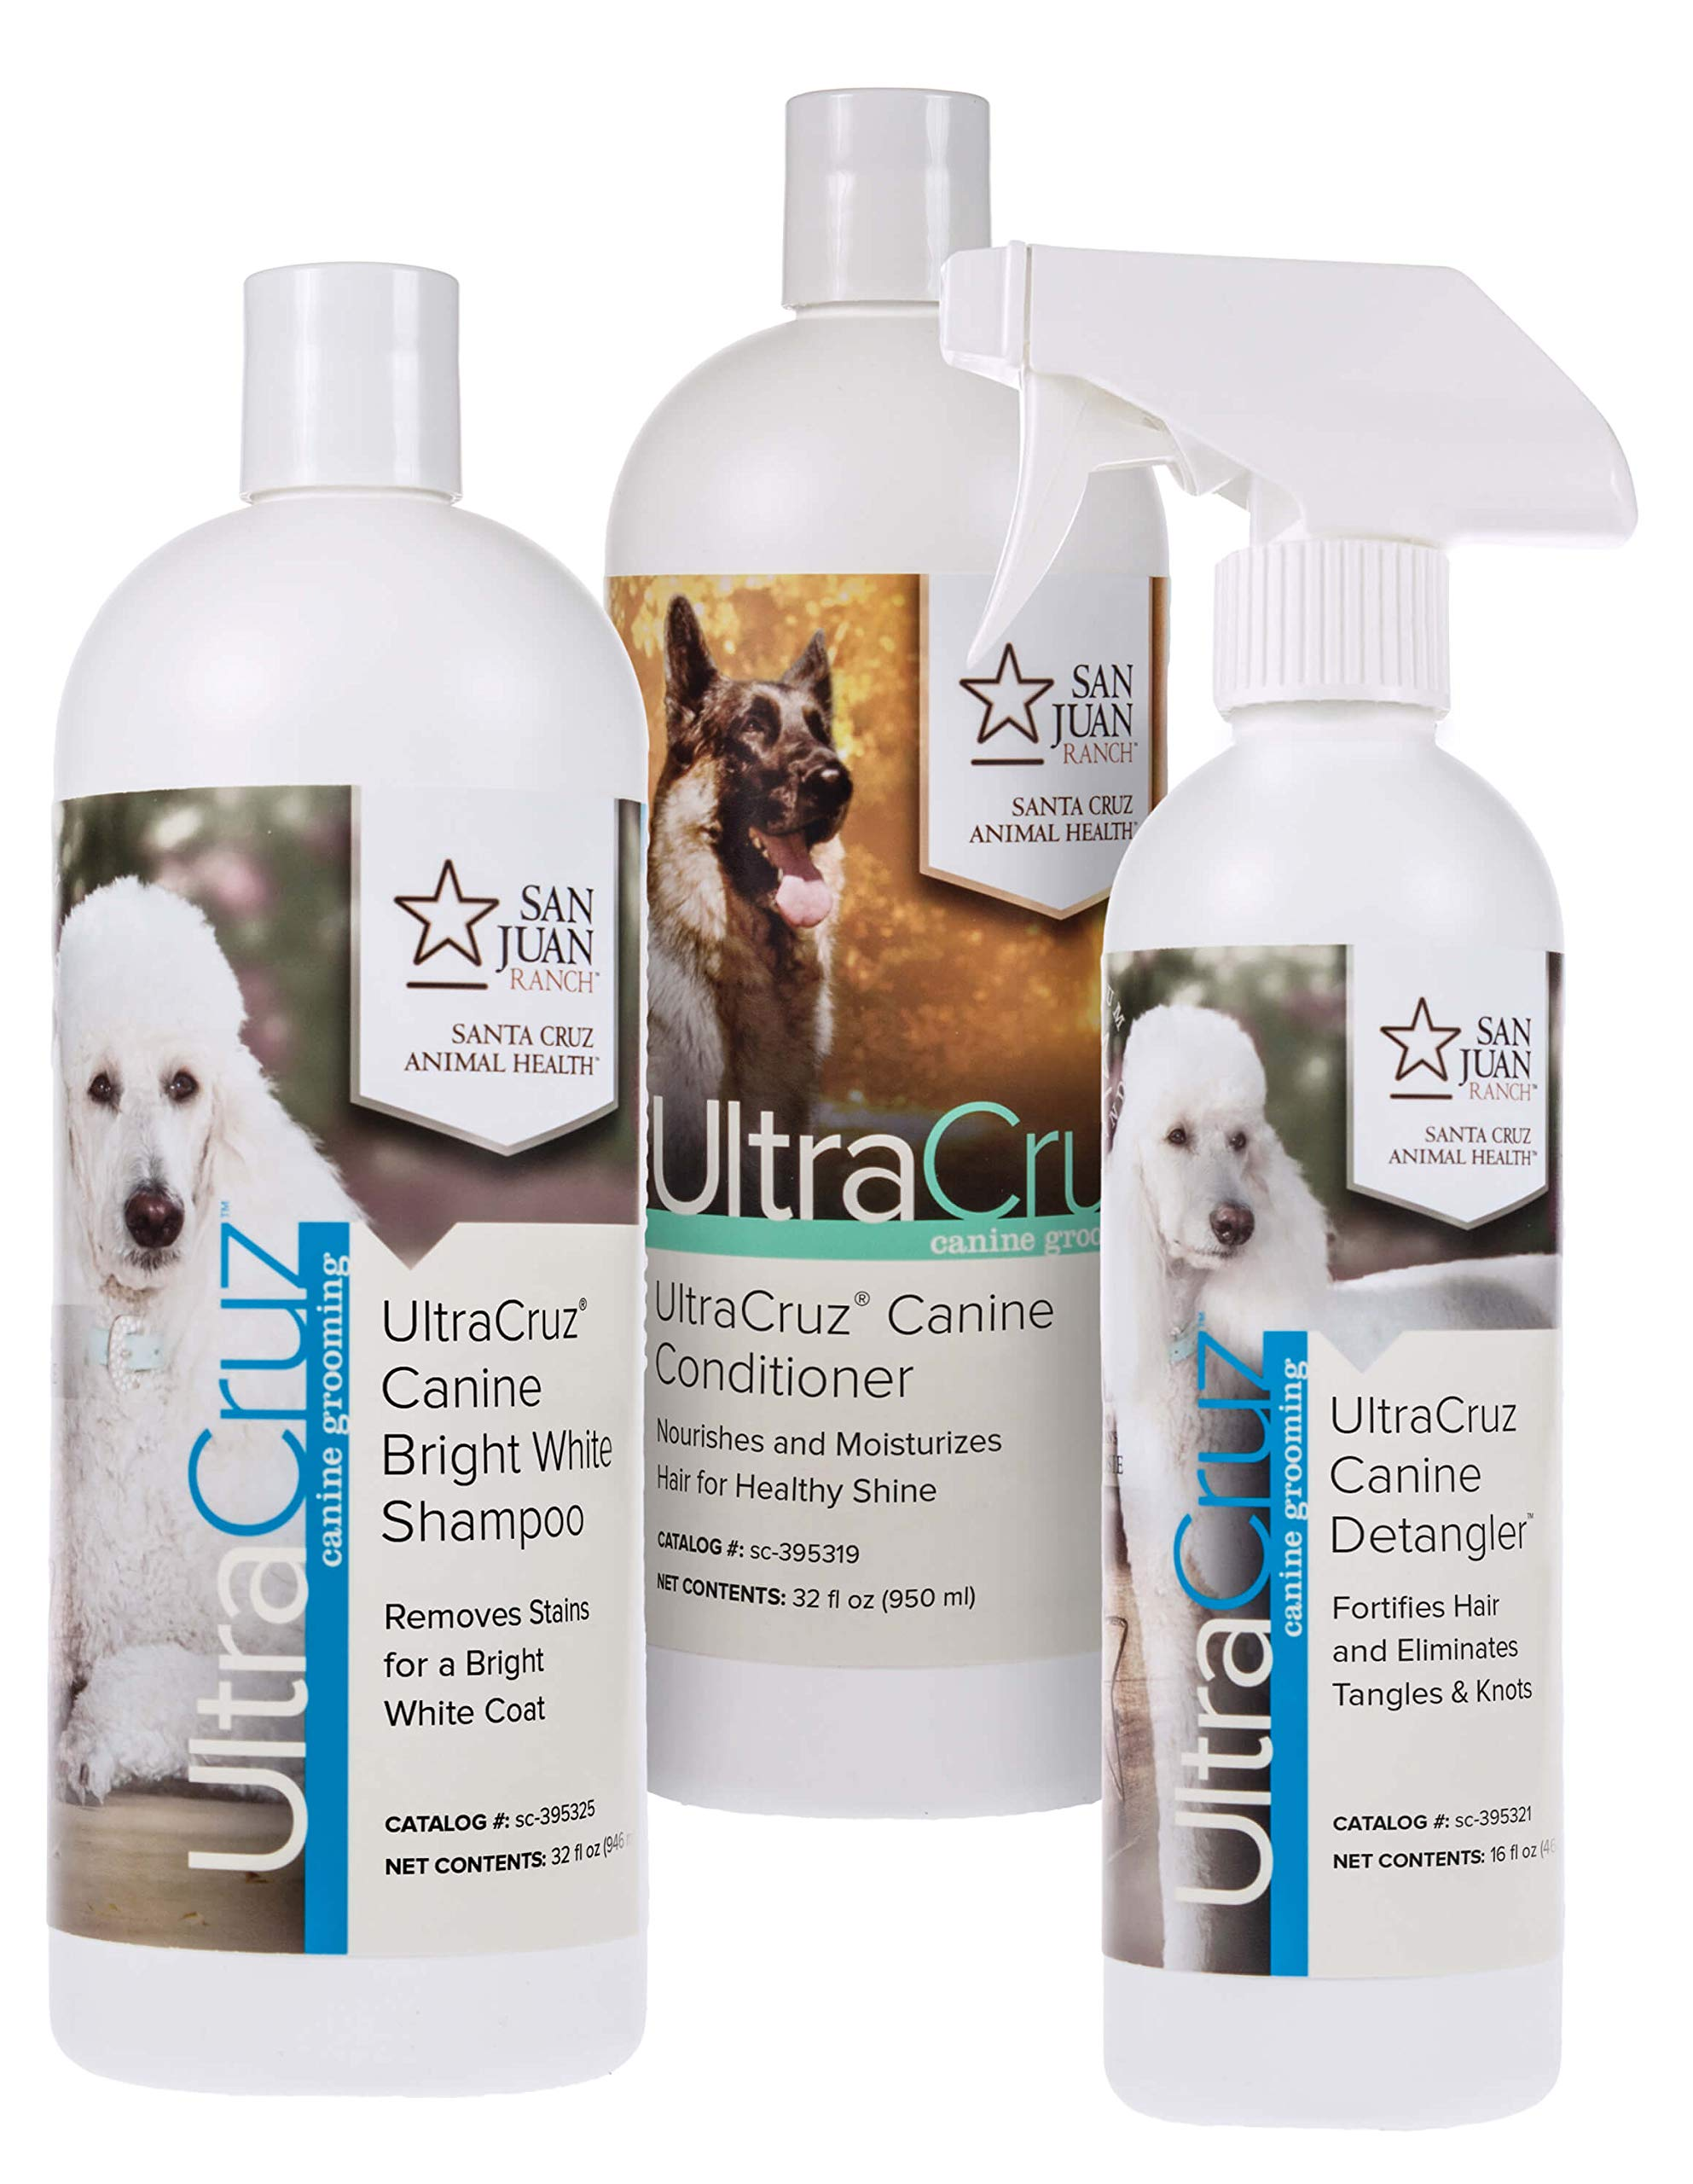 UltraCruz Canine Bright White Dog Shampoo & Conditioner Bundle, 32 oz Each with 16 oz Detangler by UltraCruz